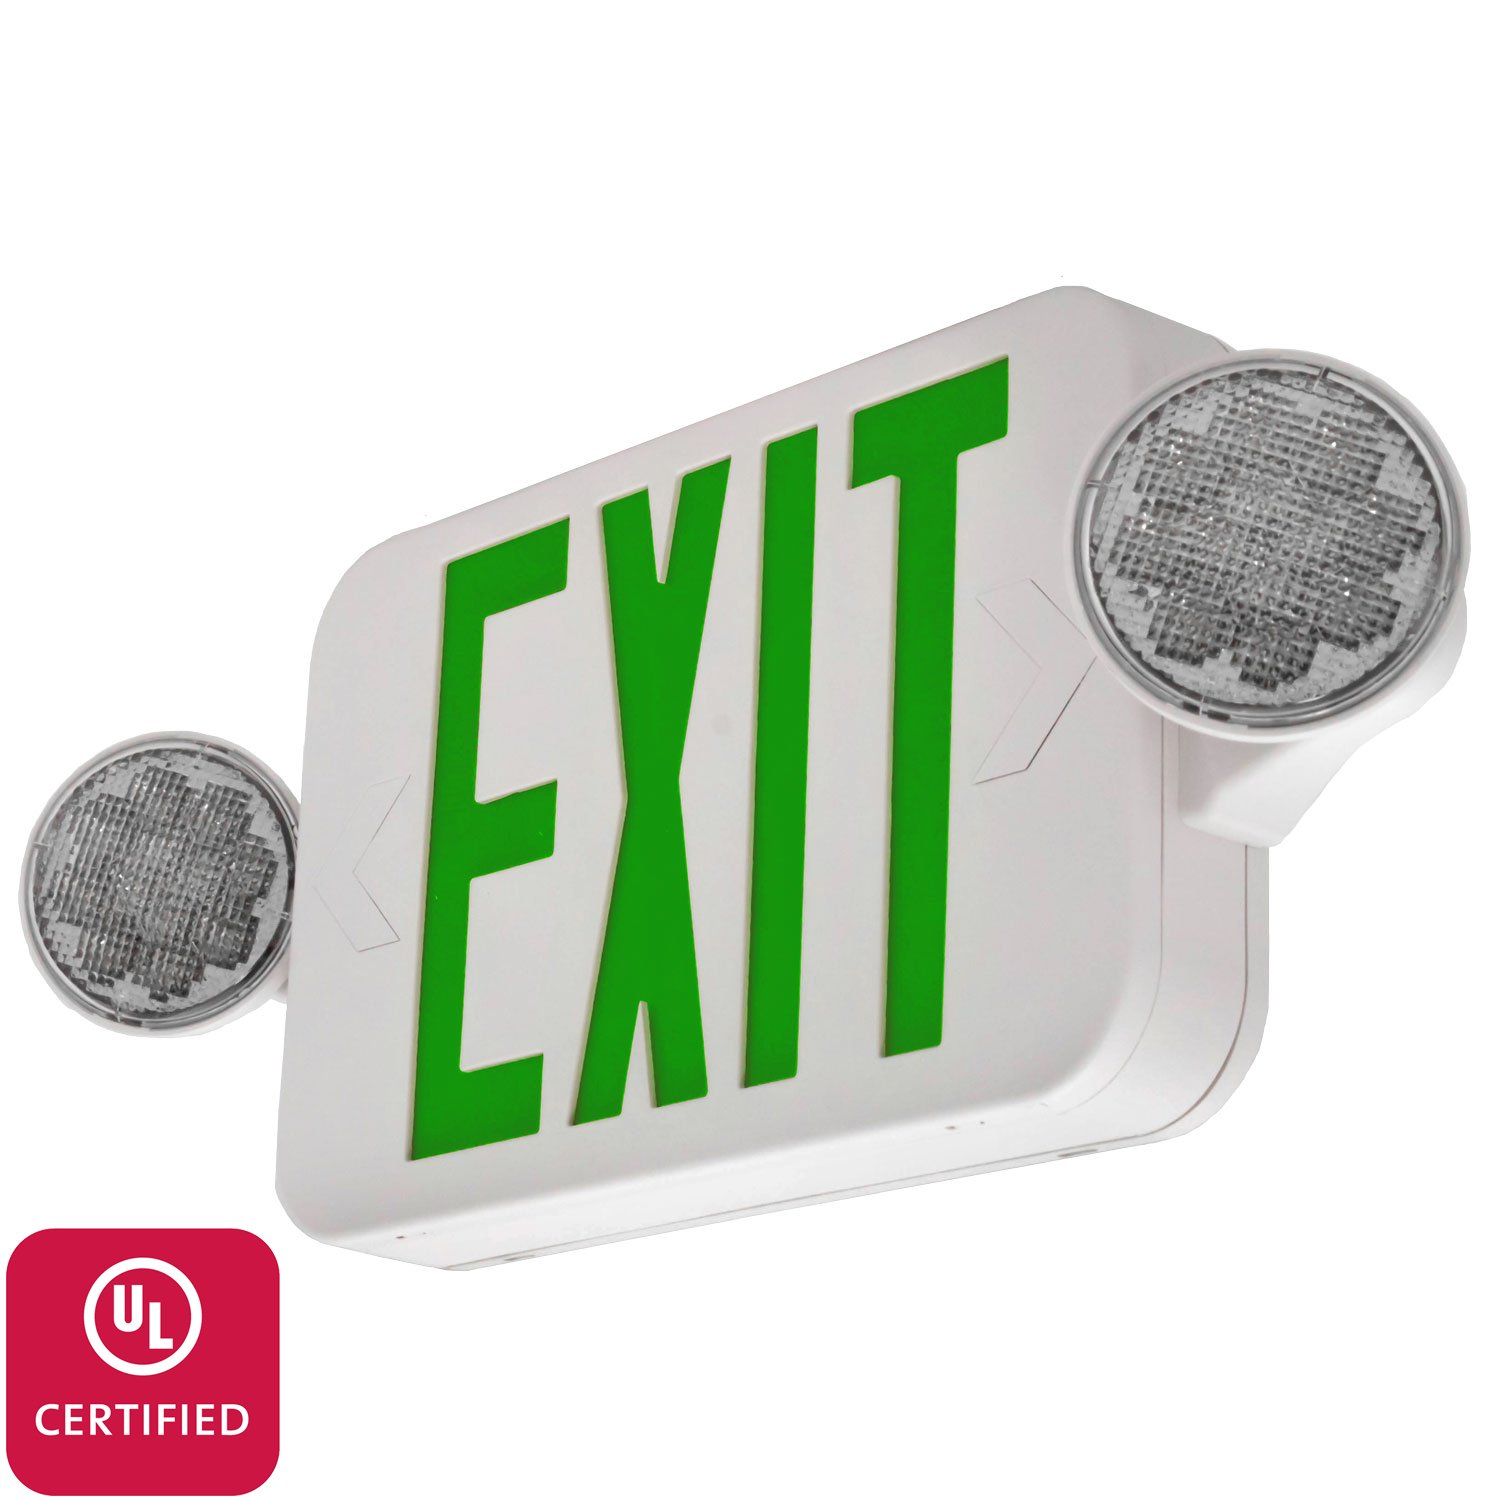 LFI Lights - UL Certified - Hardwired Green Compact Combo Exit Sign Emergency Light - High Output- COMBOGJR2